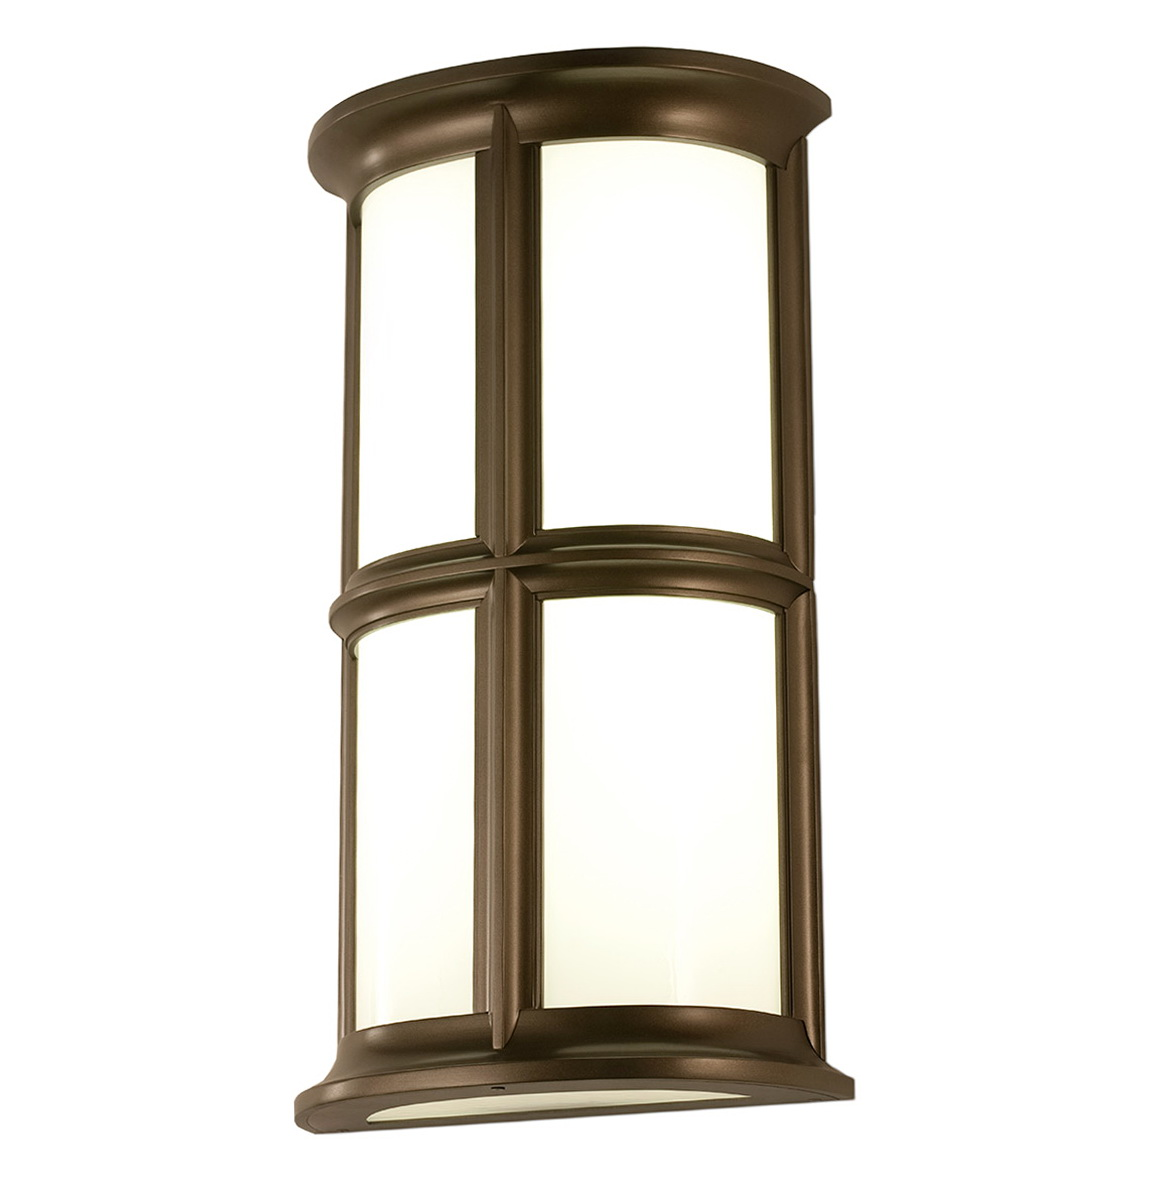 arm floor sconces sconce cover shade drum wall excellent with and reading swing for light plug cord lamps headboard portfolio mounted lamp